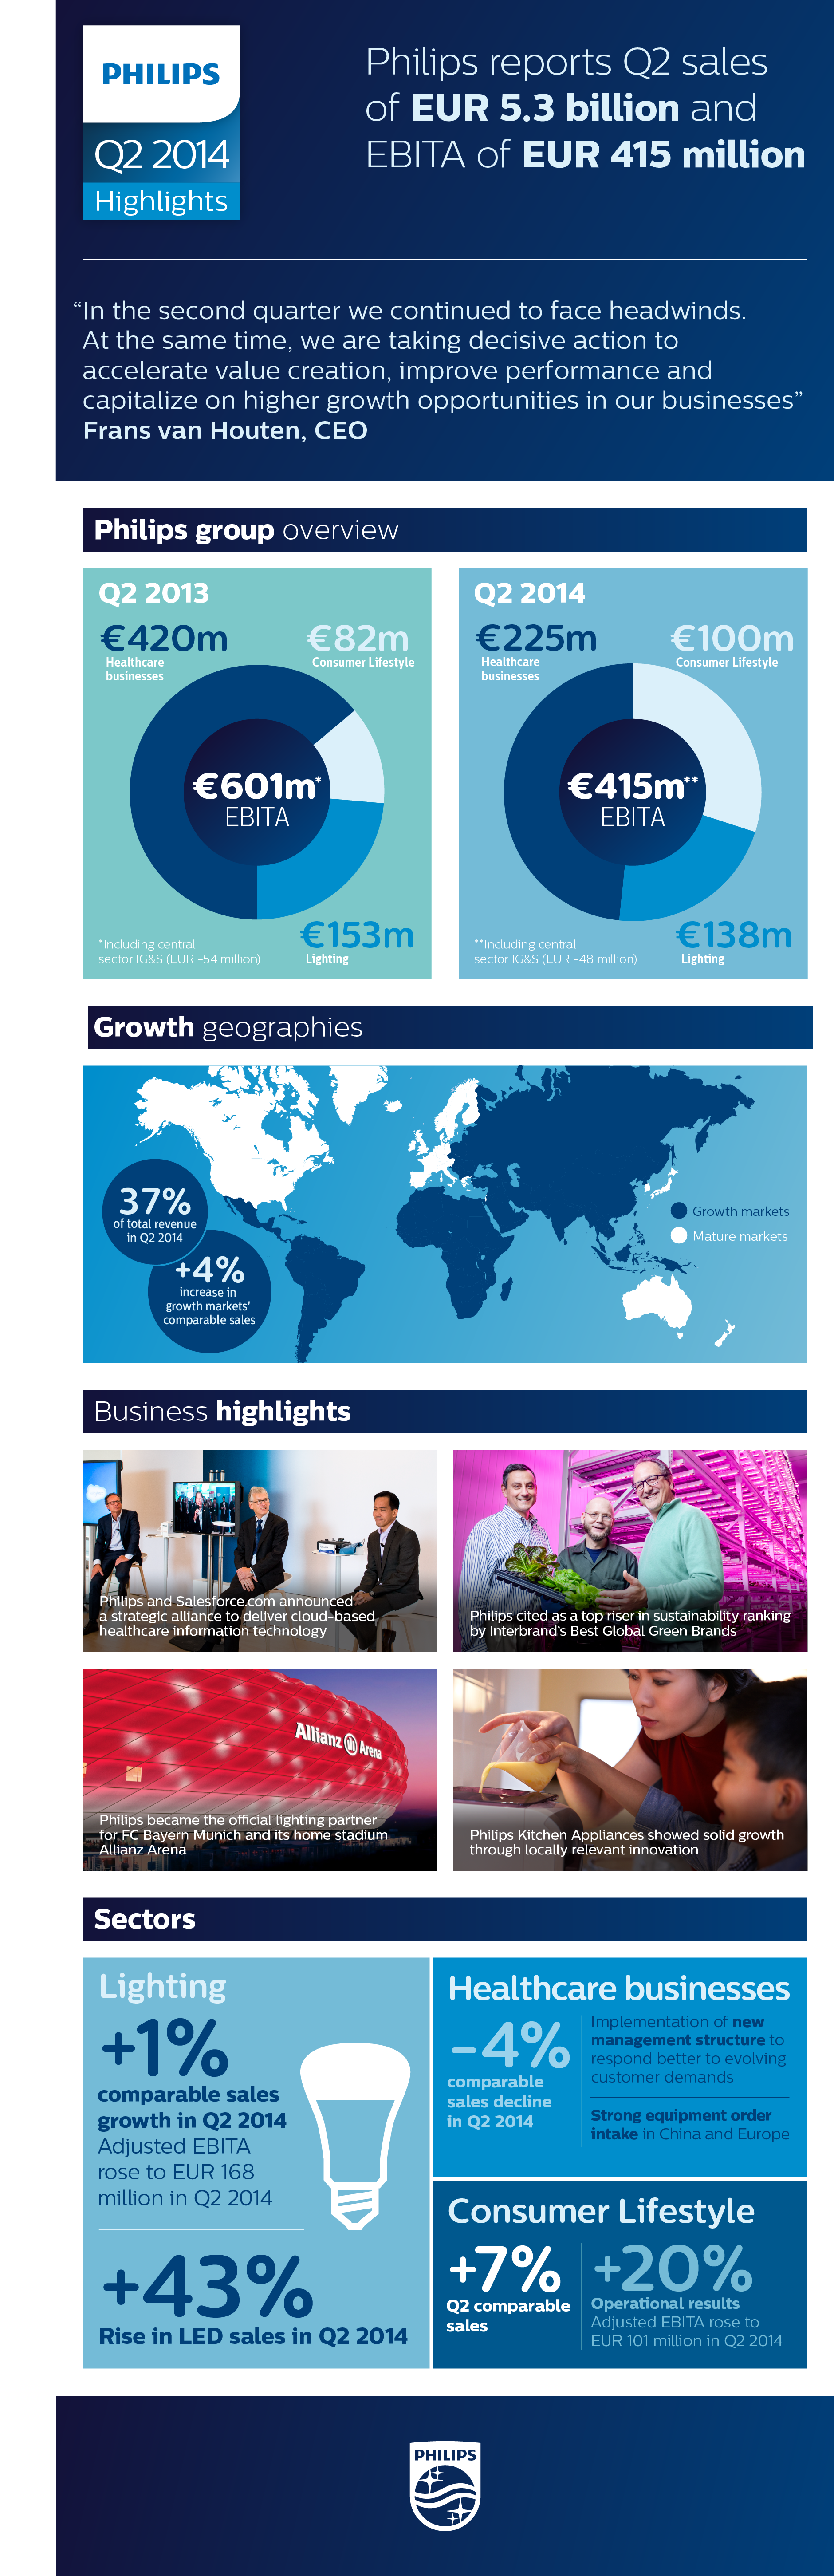 Philips' Second Quarter and Semi-Annual Results 2014 Infographic